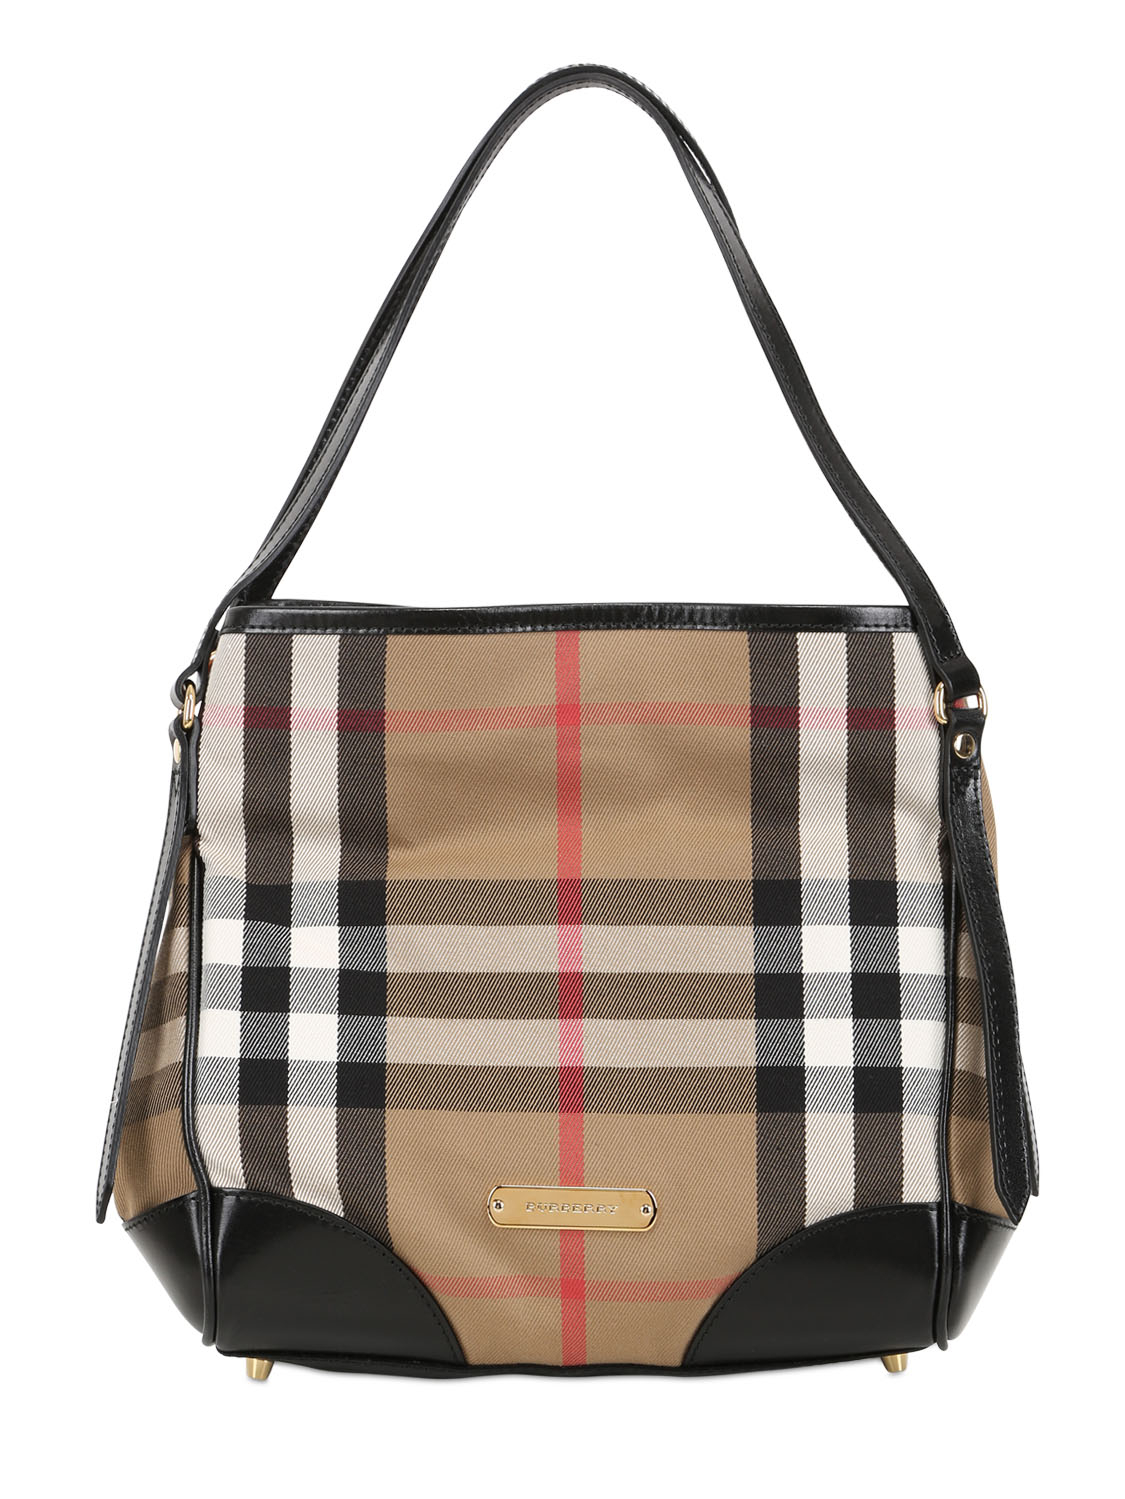 d40b1da6b2f0 Keeping Burberry Small Bags  Burberry boston small smoked check bag ...